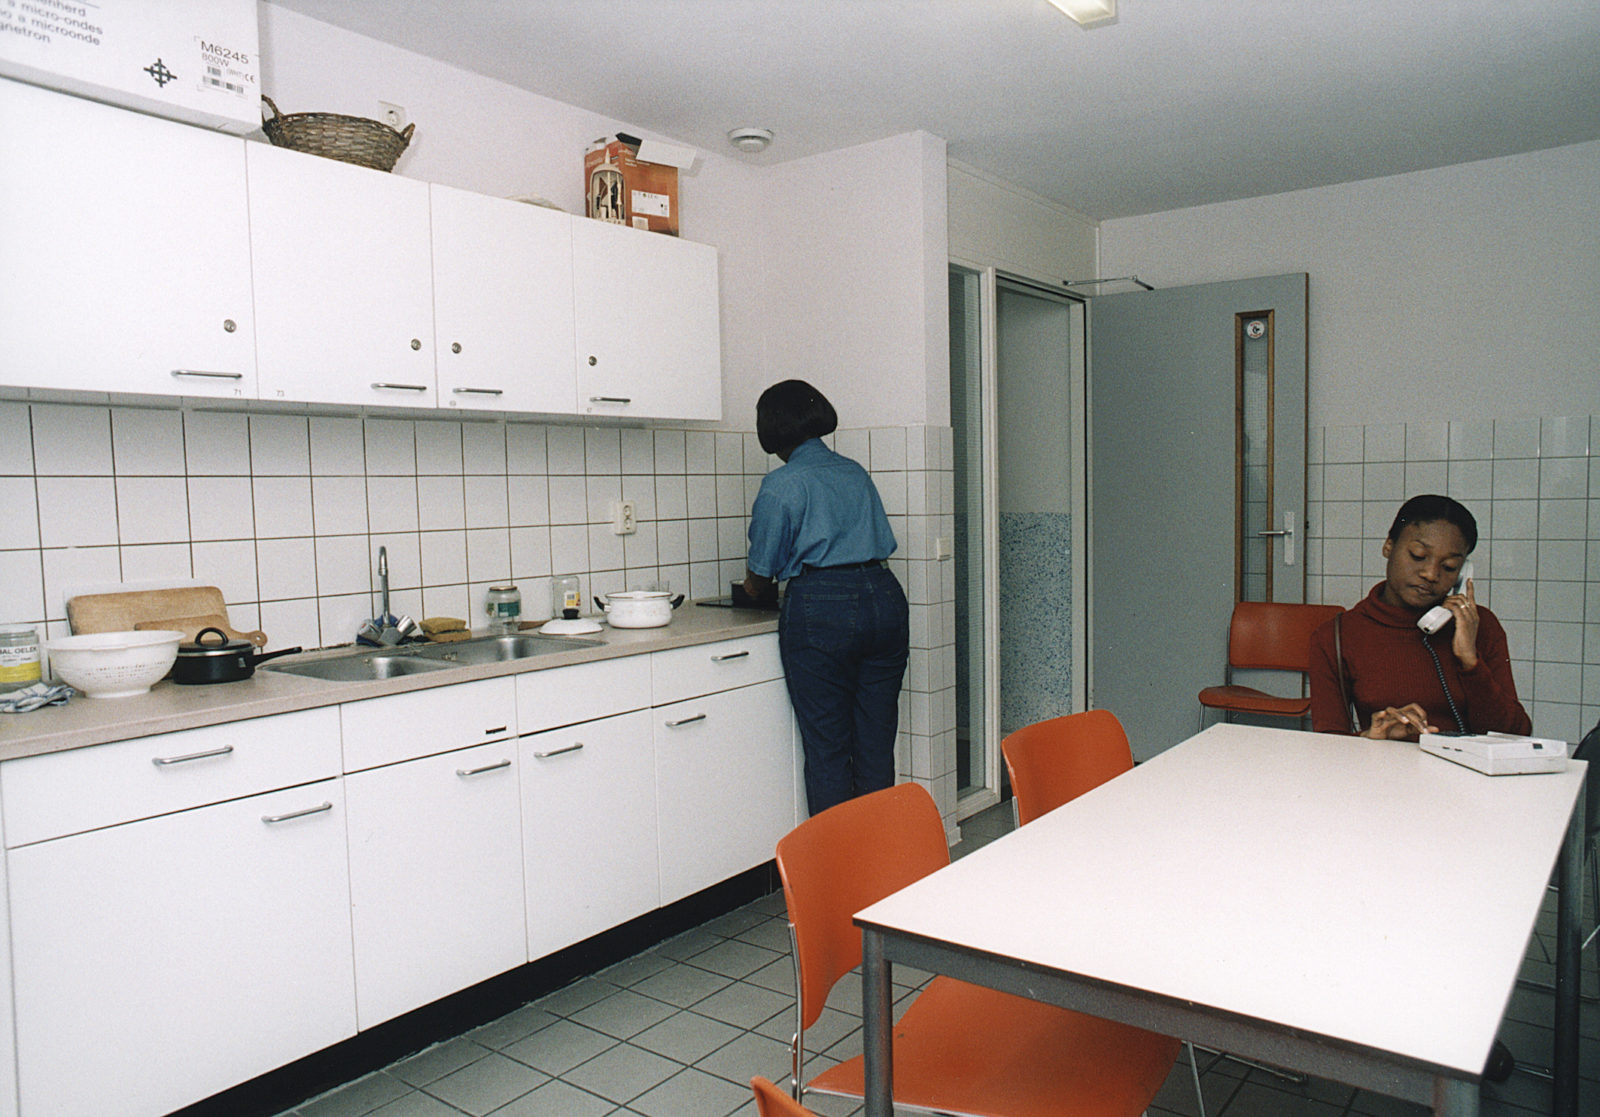 ISS 65 years in pictures – student housing in 2000